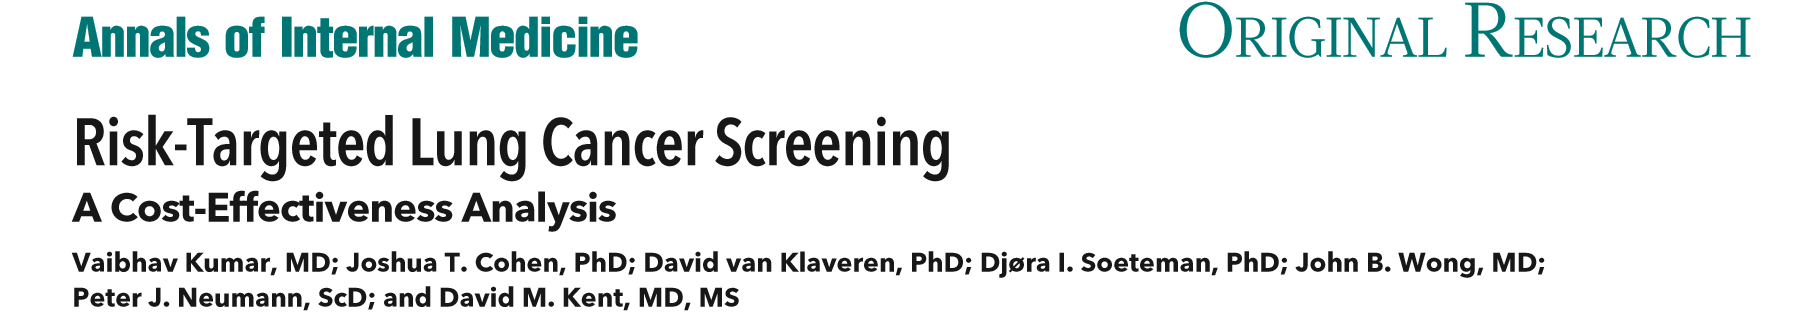 Risk-Targeted Lung Cancer Screening